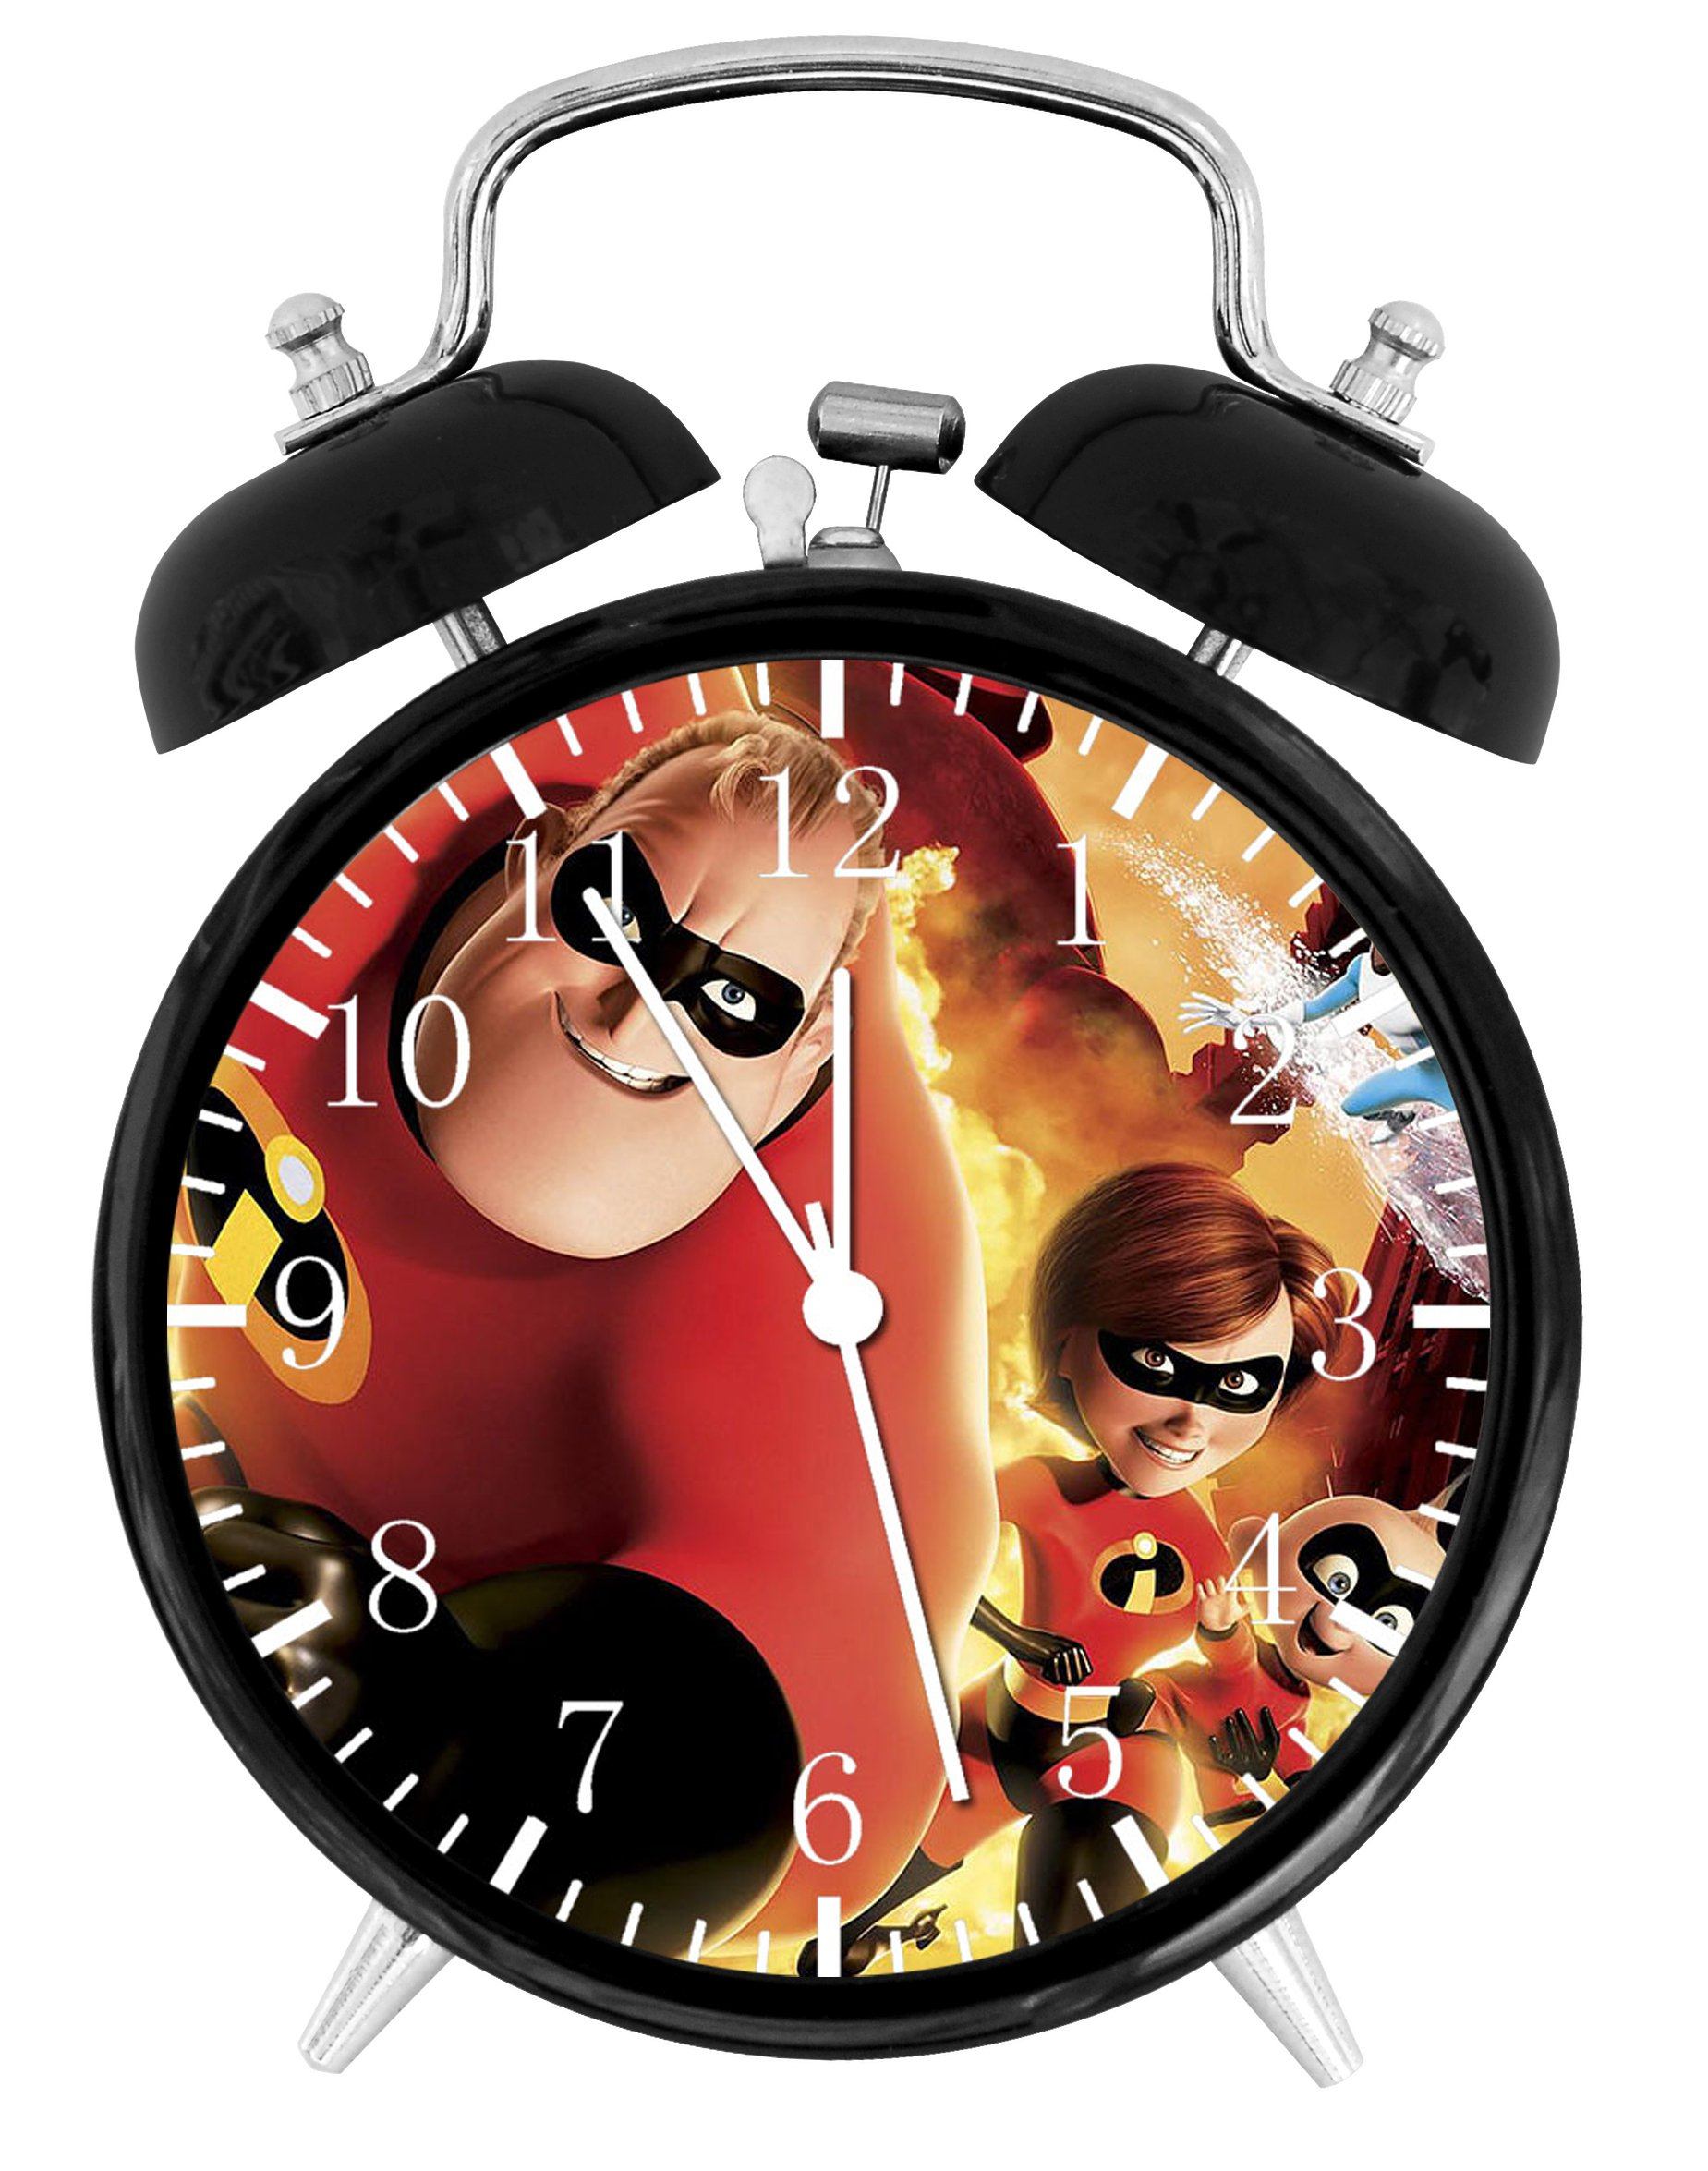 Disney The Incredibles Alarm Desk Clock Home Office Decor F54 Nice For Gifts